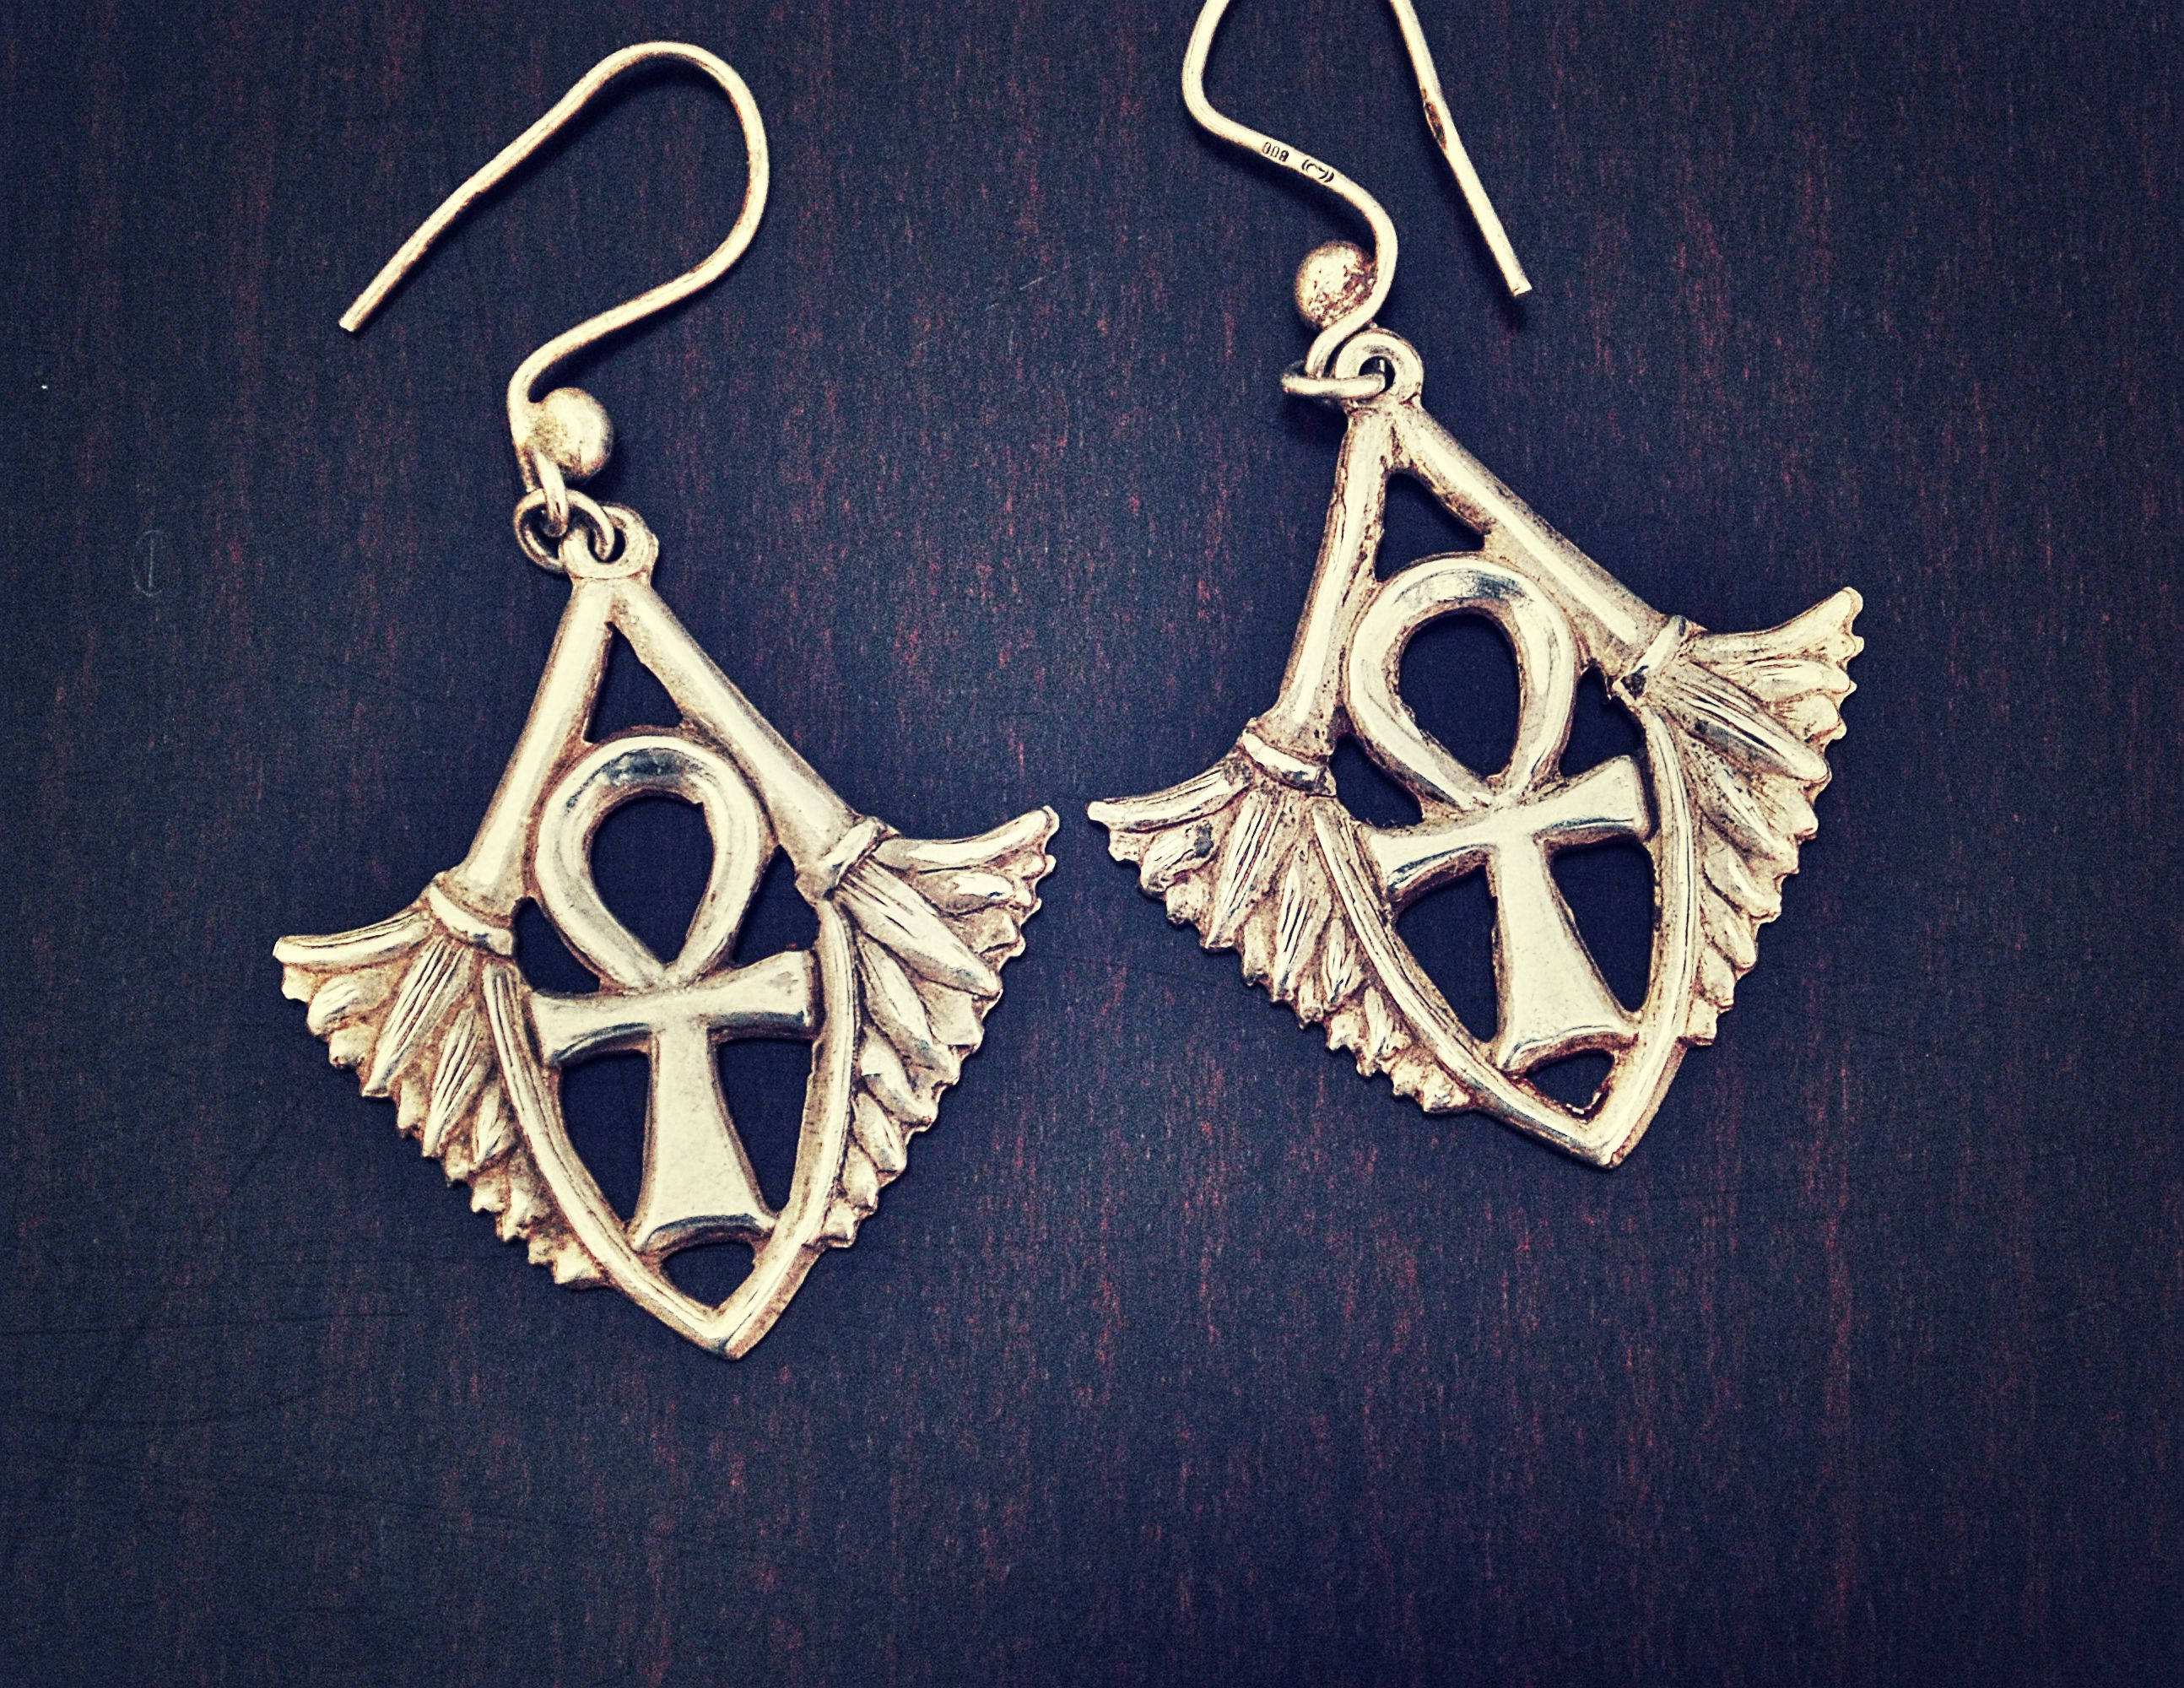 Egyptian Ankh and Lotus Earrings - Ankh Dangle Earrings - Egypt Silver Earrings - Ankh Jewelry